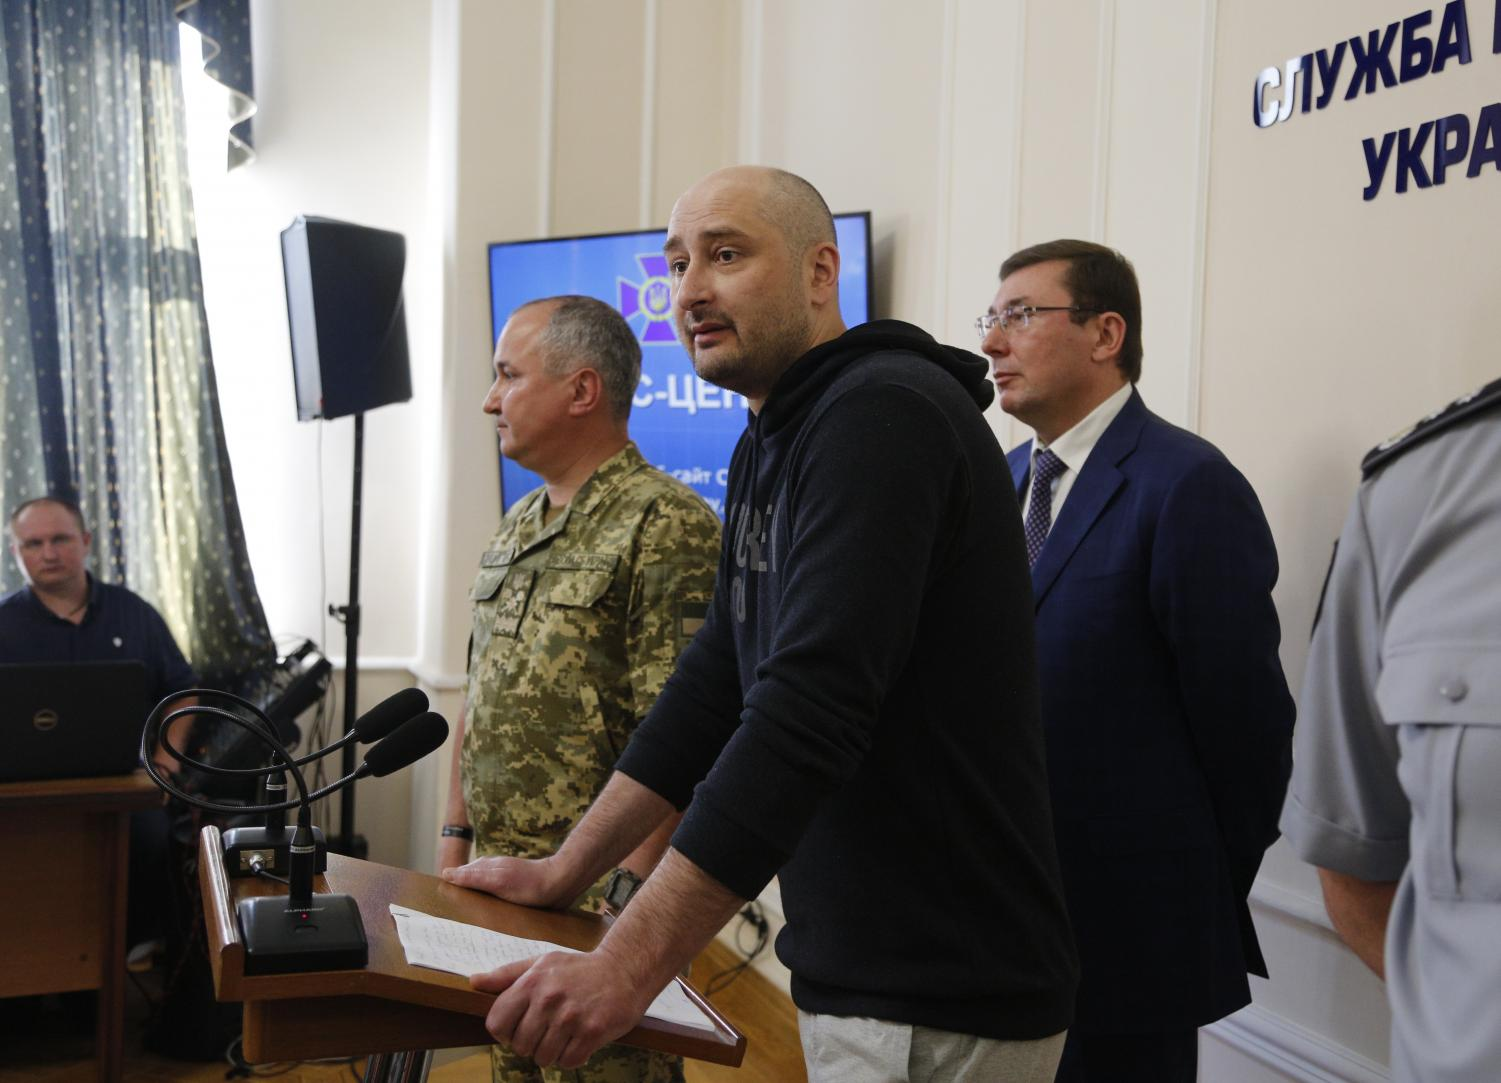 Russian journalist Arkady Babchenko, center, speaks to the media at the Ukrainian Security Service on Wednesday. Babchenko turned up at a news conference in the Ukrainian capital Wednesday less than 24 hours after police reported he had been shot and killed at his Kiev apartment building. The country's security services said Babchenko's death was faked to foil a plot to take his life.